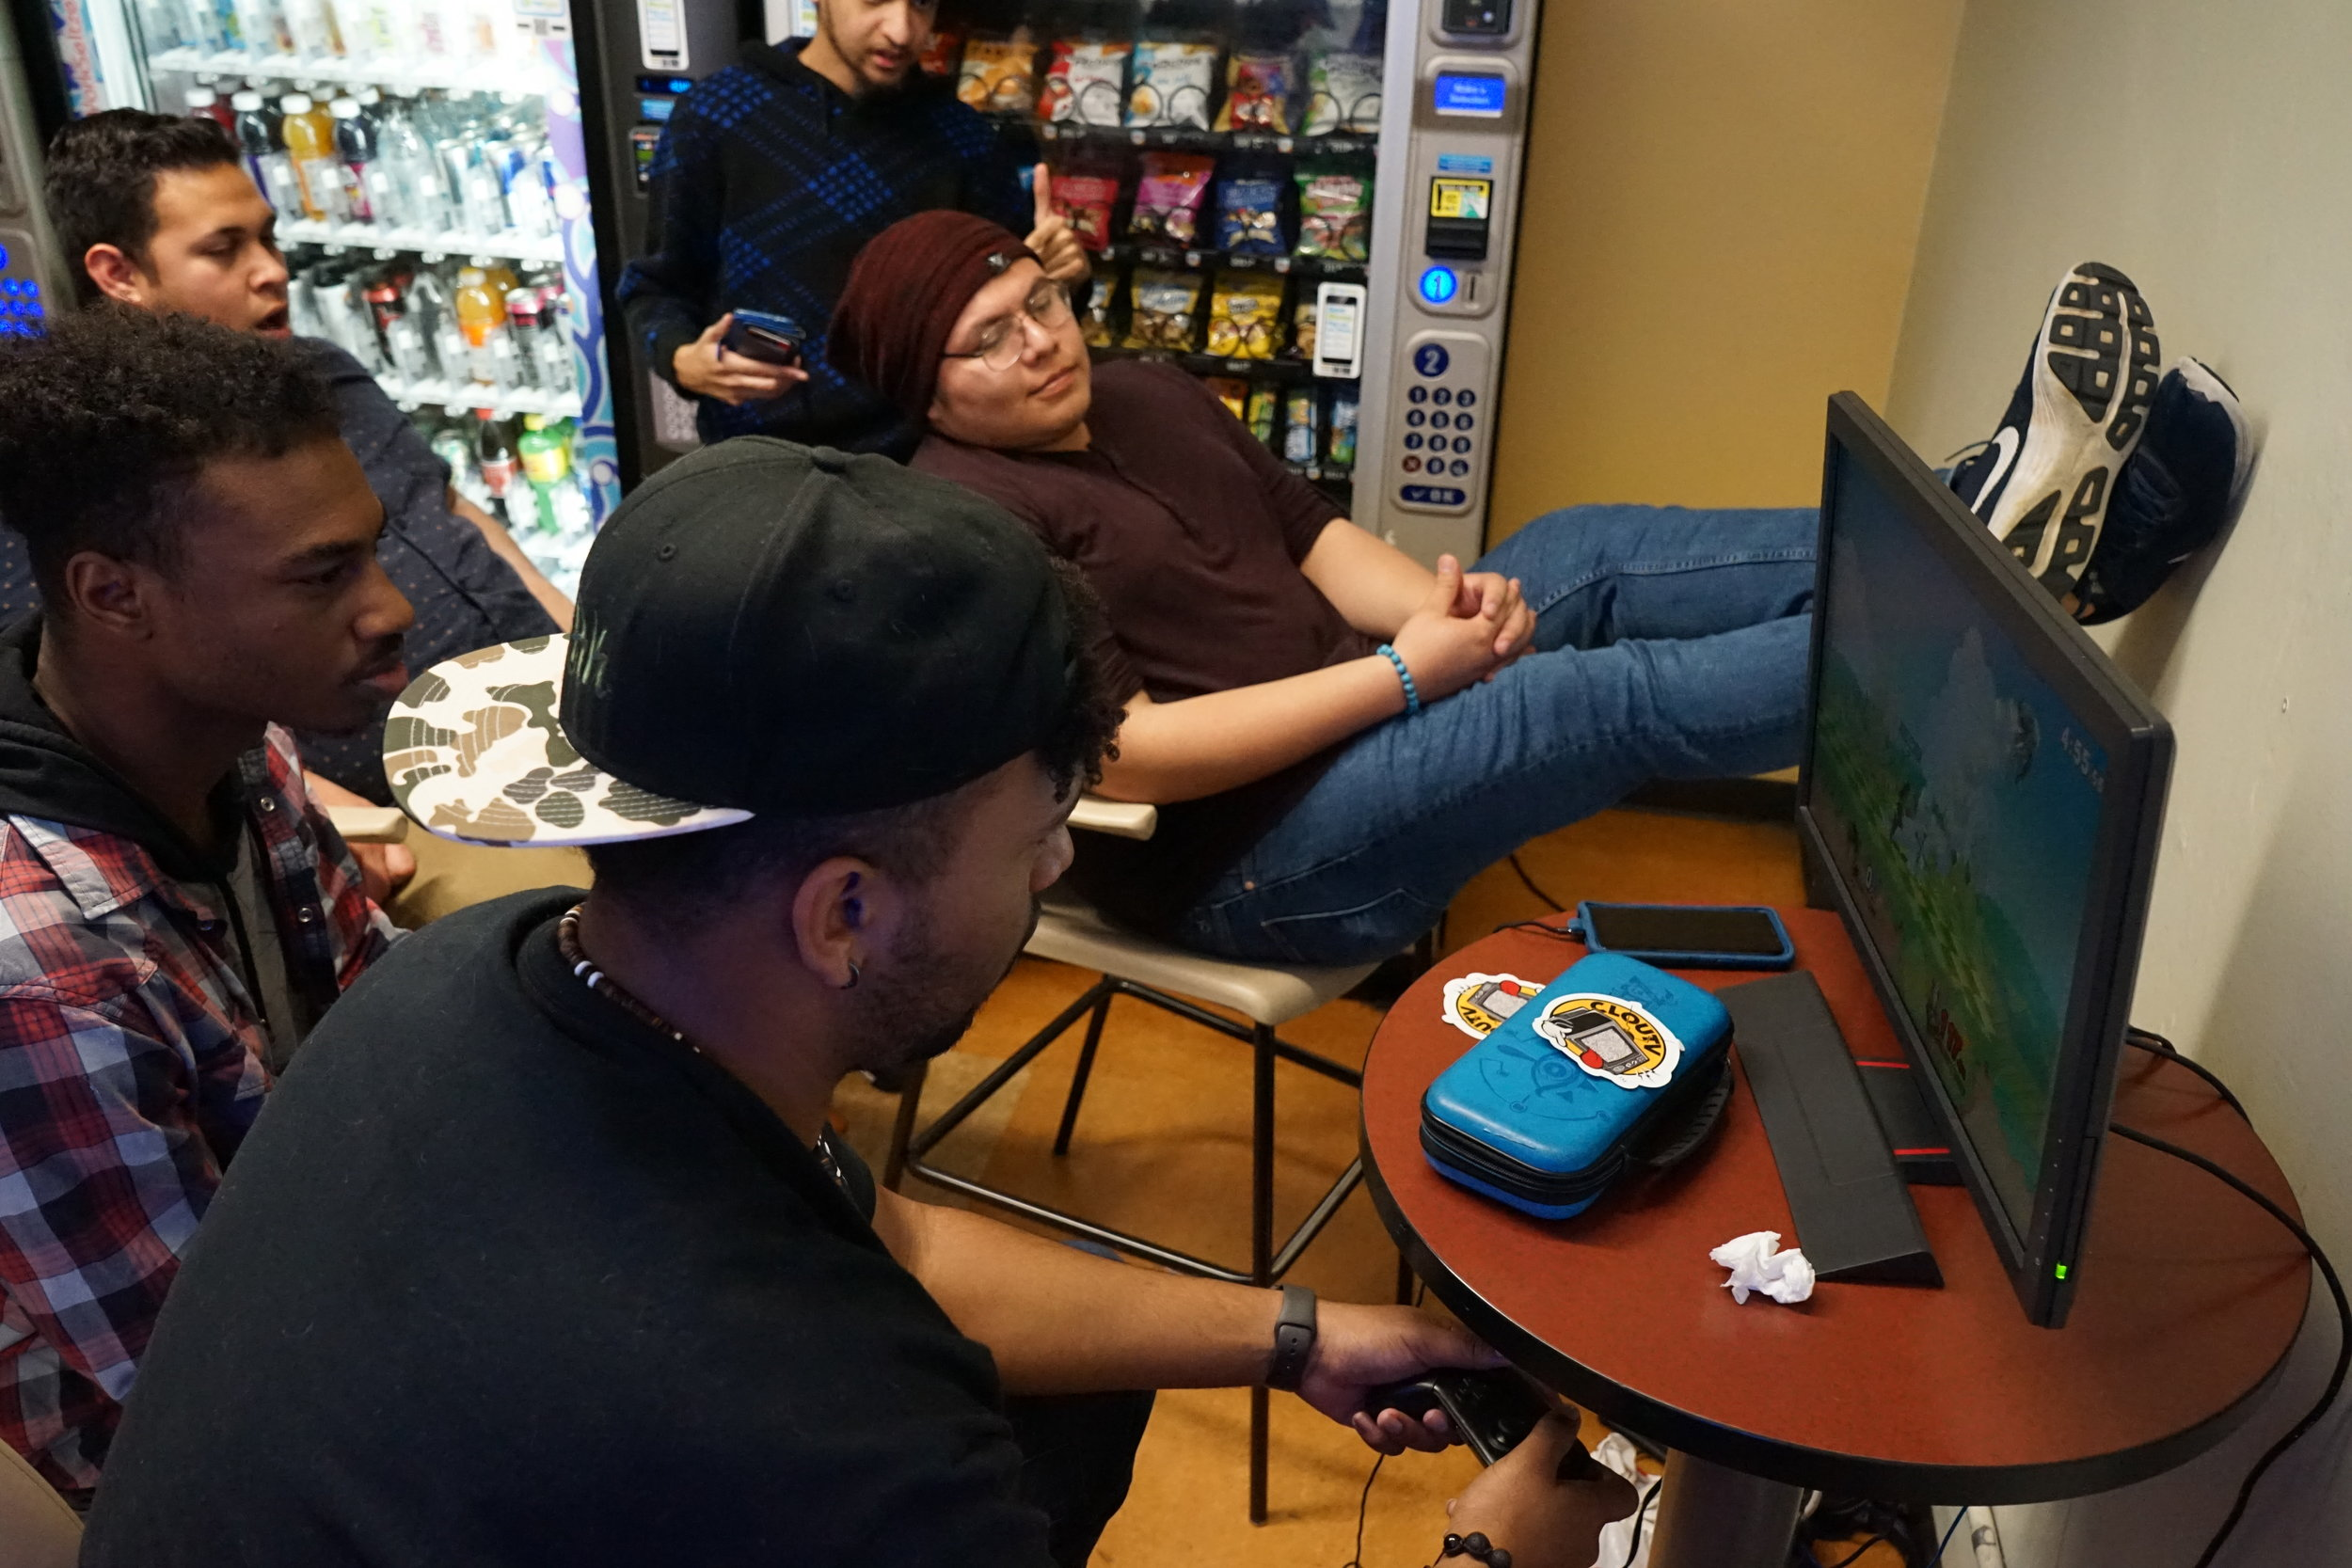 The group of SMC student gamers gathers near the vending machines in the Main Campus cafeteria to play video games and have friendly competitions against each other, Monday, March 4, 2019, in Santa Monica, Calif. Despite their regular meet-ups, the restrictions and qualifications for a club have kept the group from forming an official Gaming Club through the college. (Nicole Haun/The Corsair)